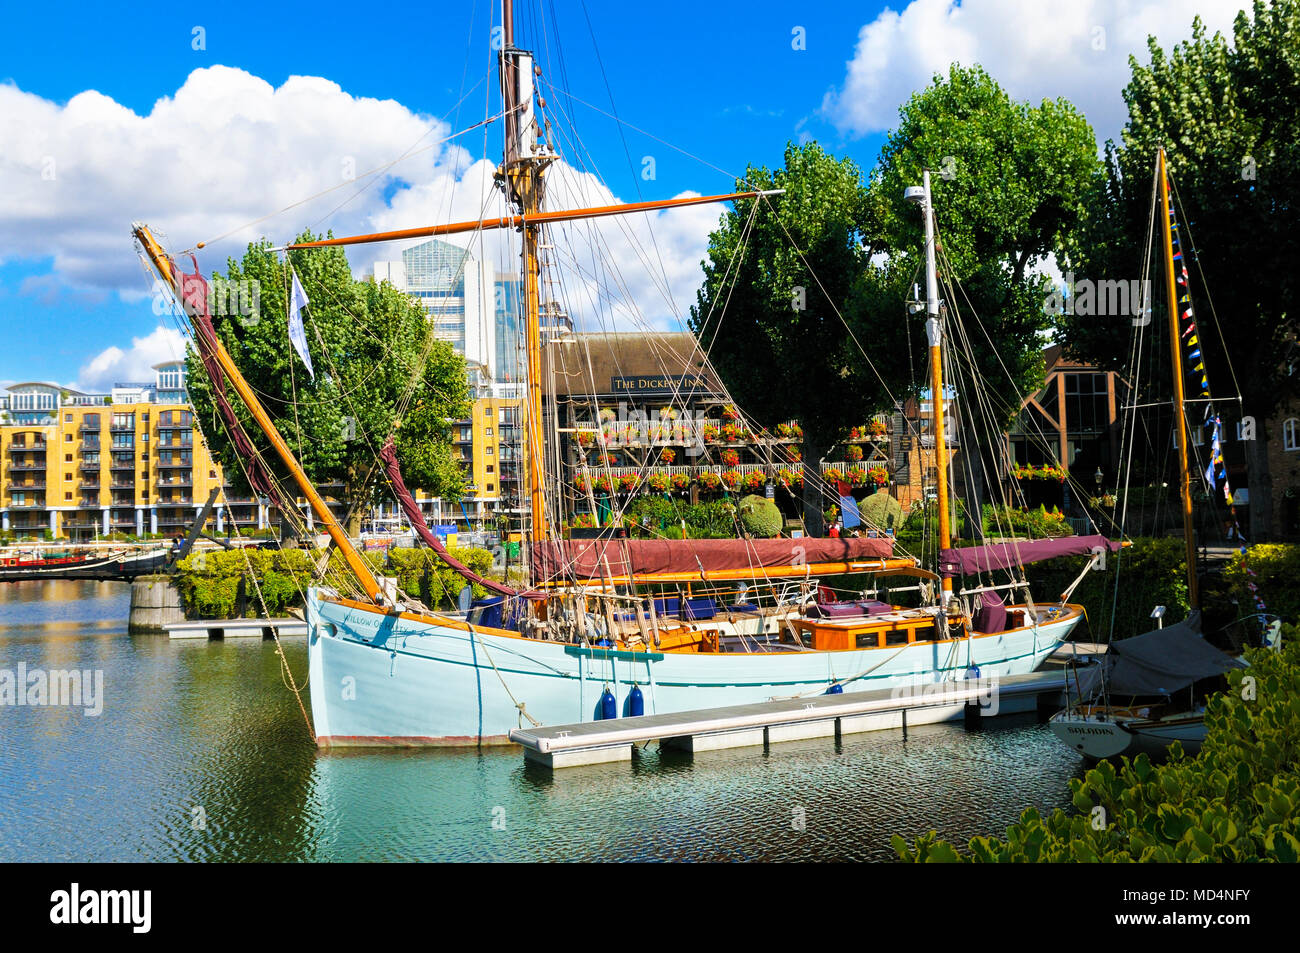 'Willow of Harty' sailing vessel moored in St Katharine Docks, Tower Hamlets, London, England, UK - Stock Image